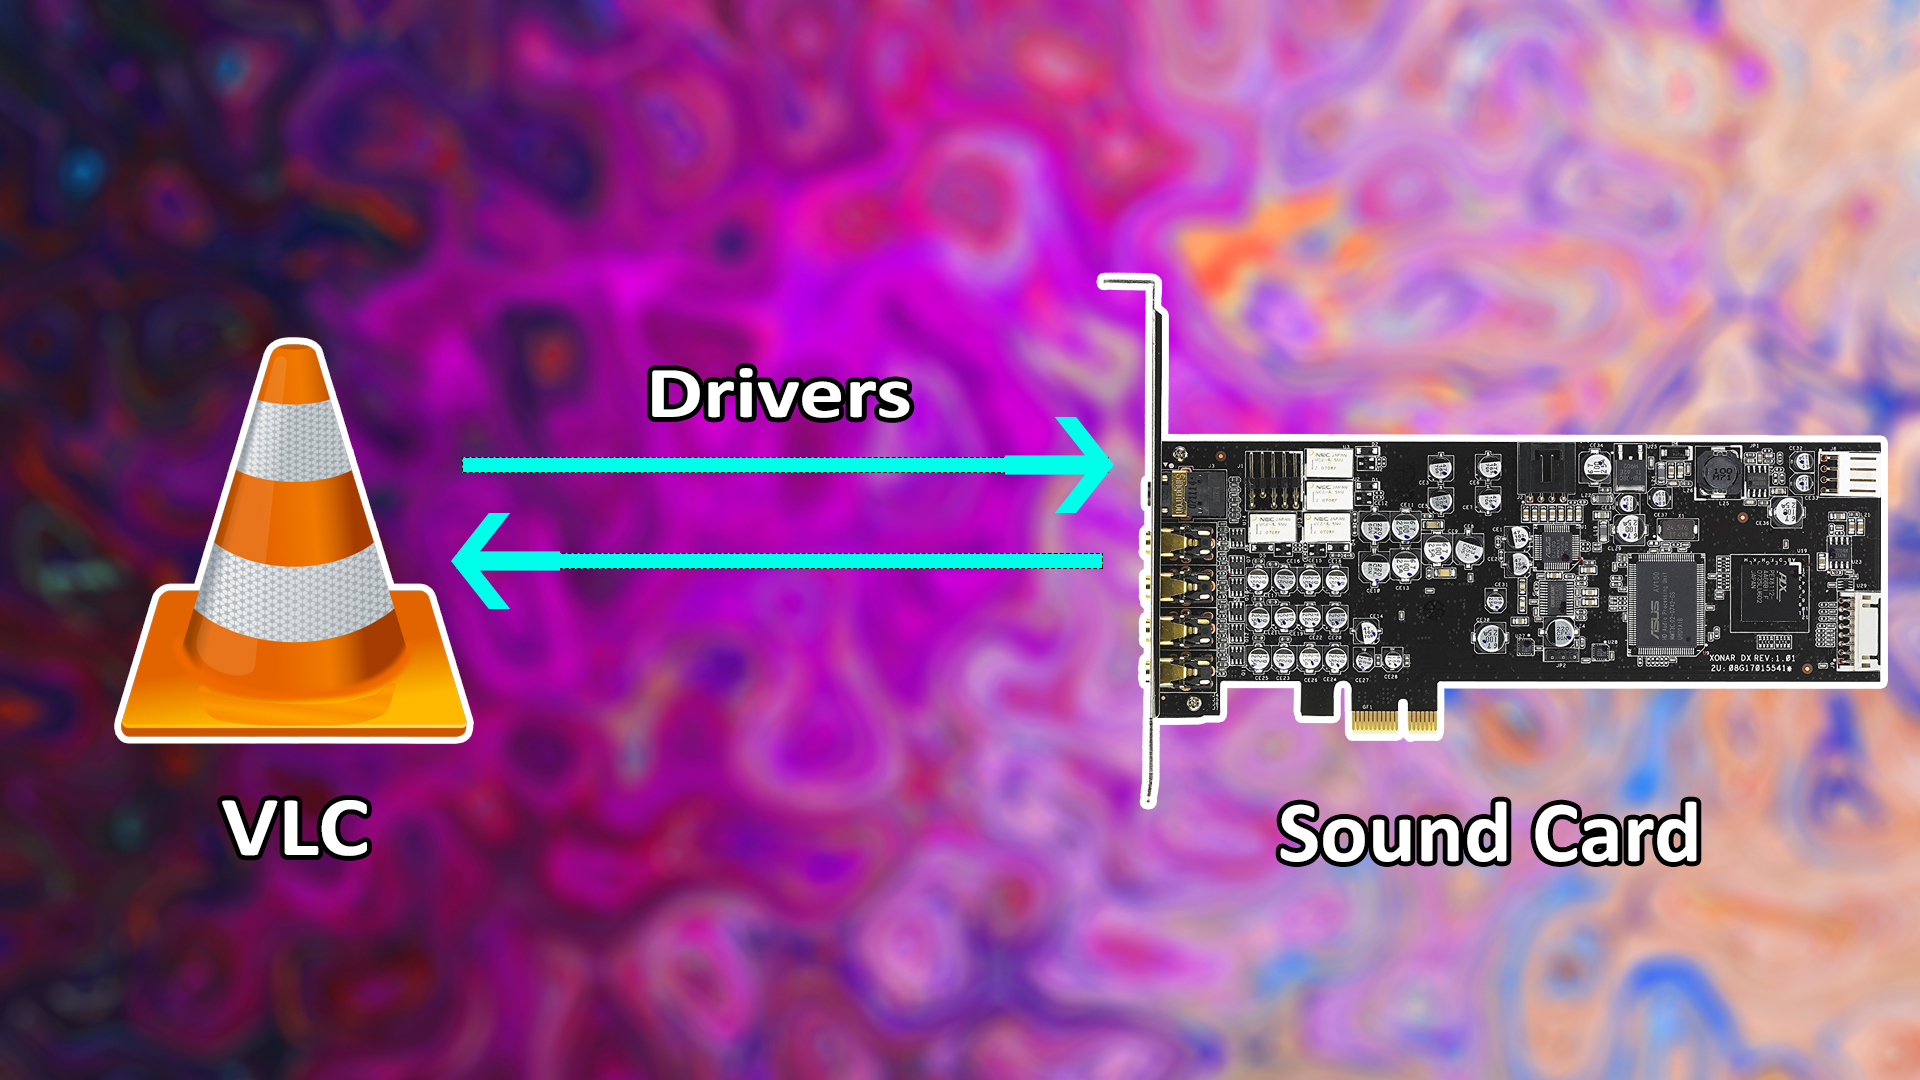 What are Device Drivers? Their Functions May Shock You!